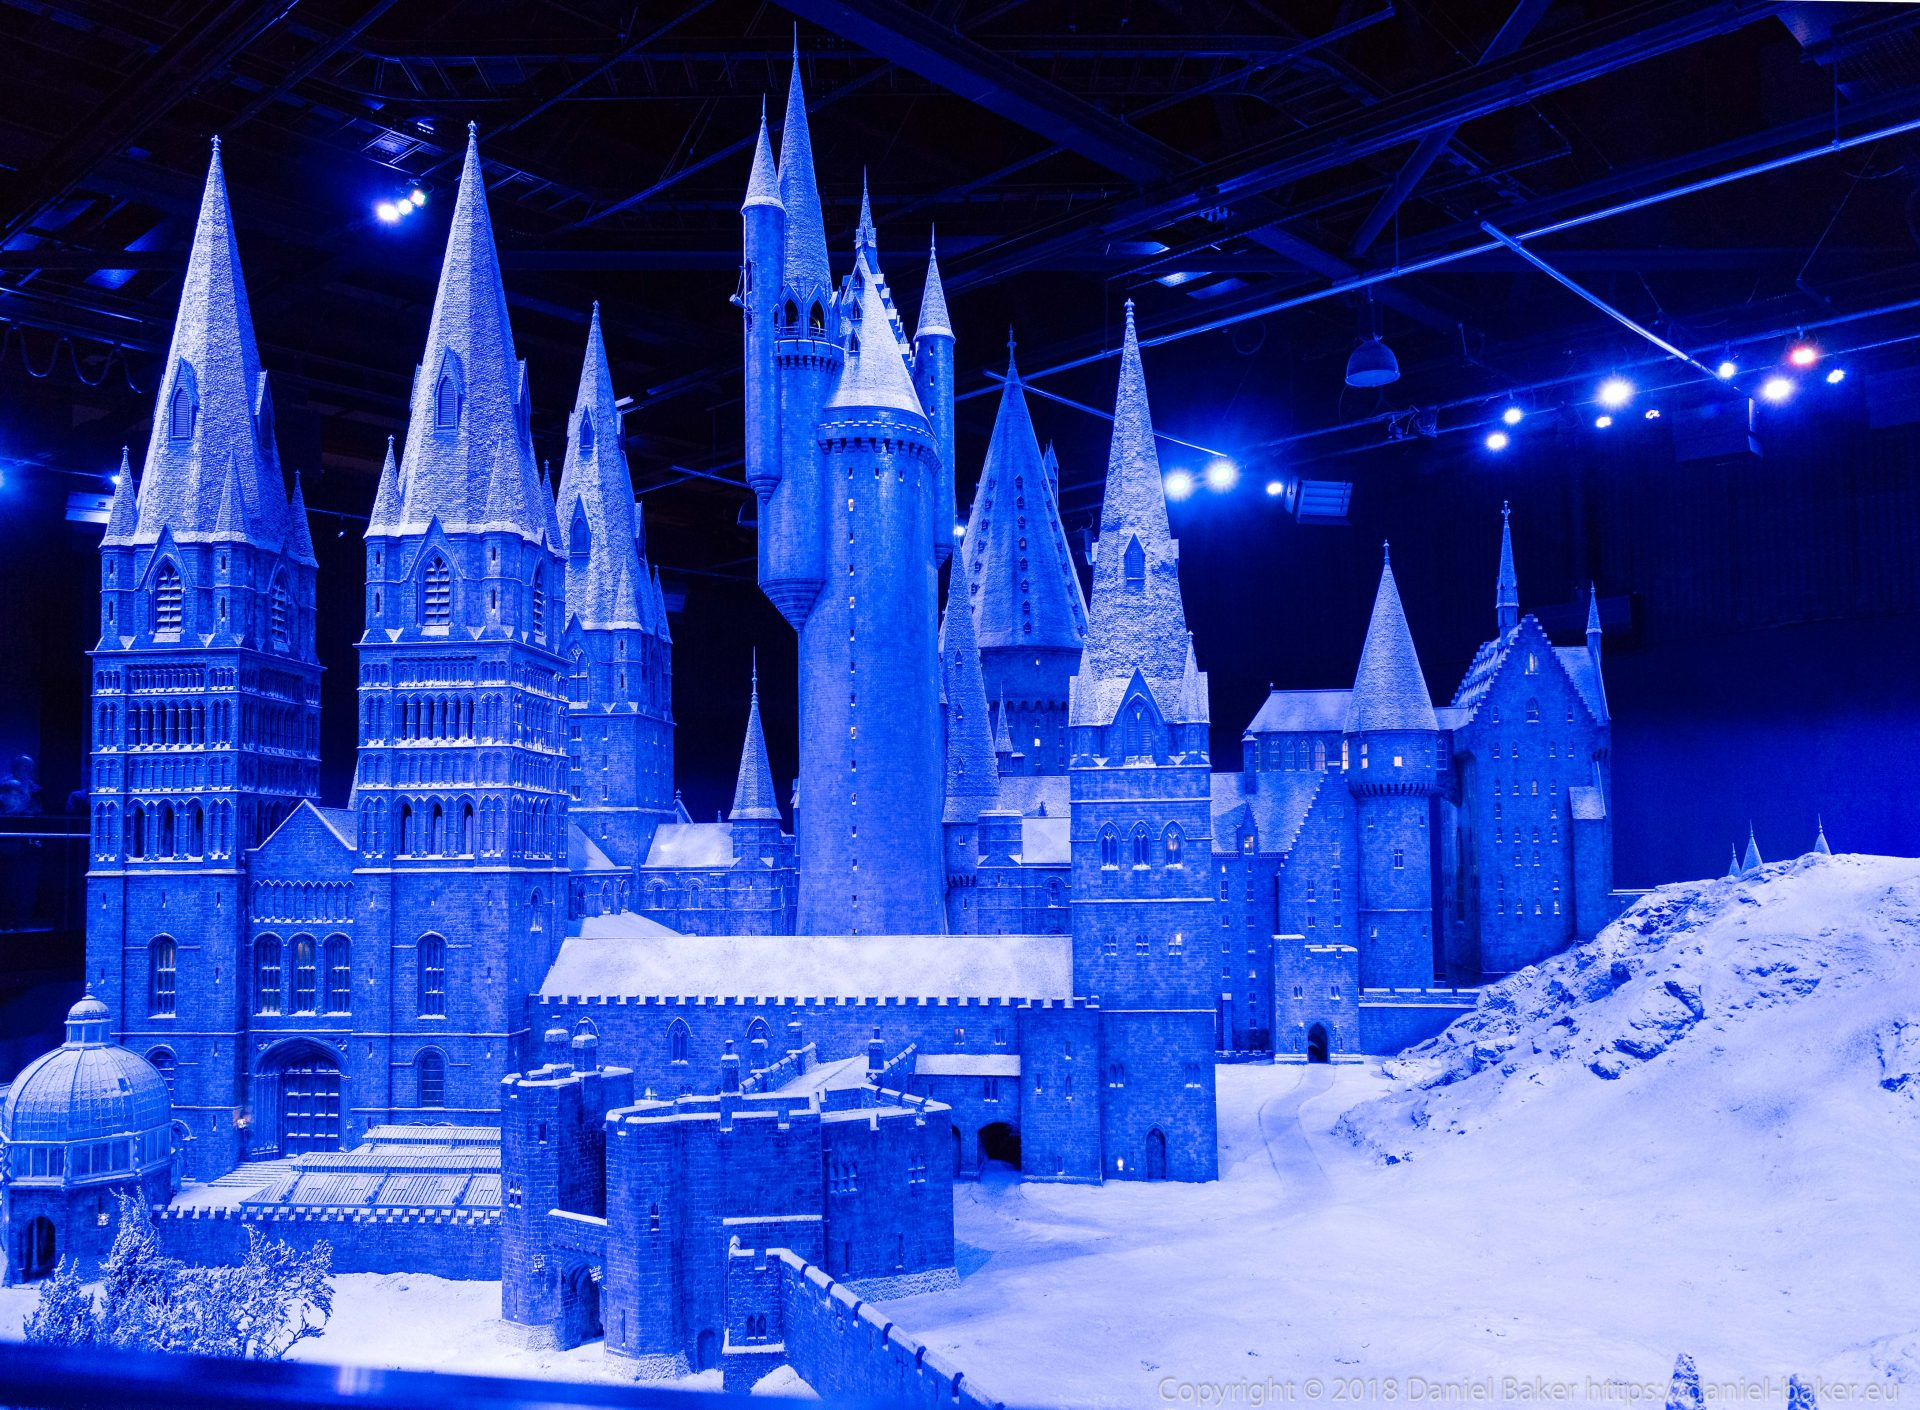 A model of Hogwarts in the snow lit by a blue light